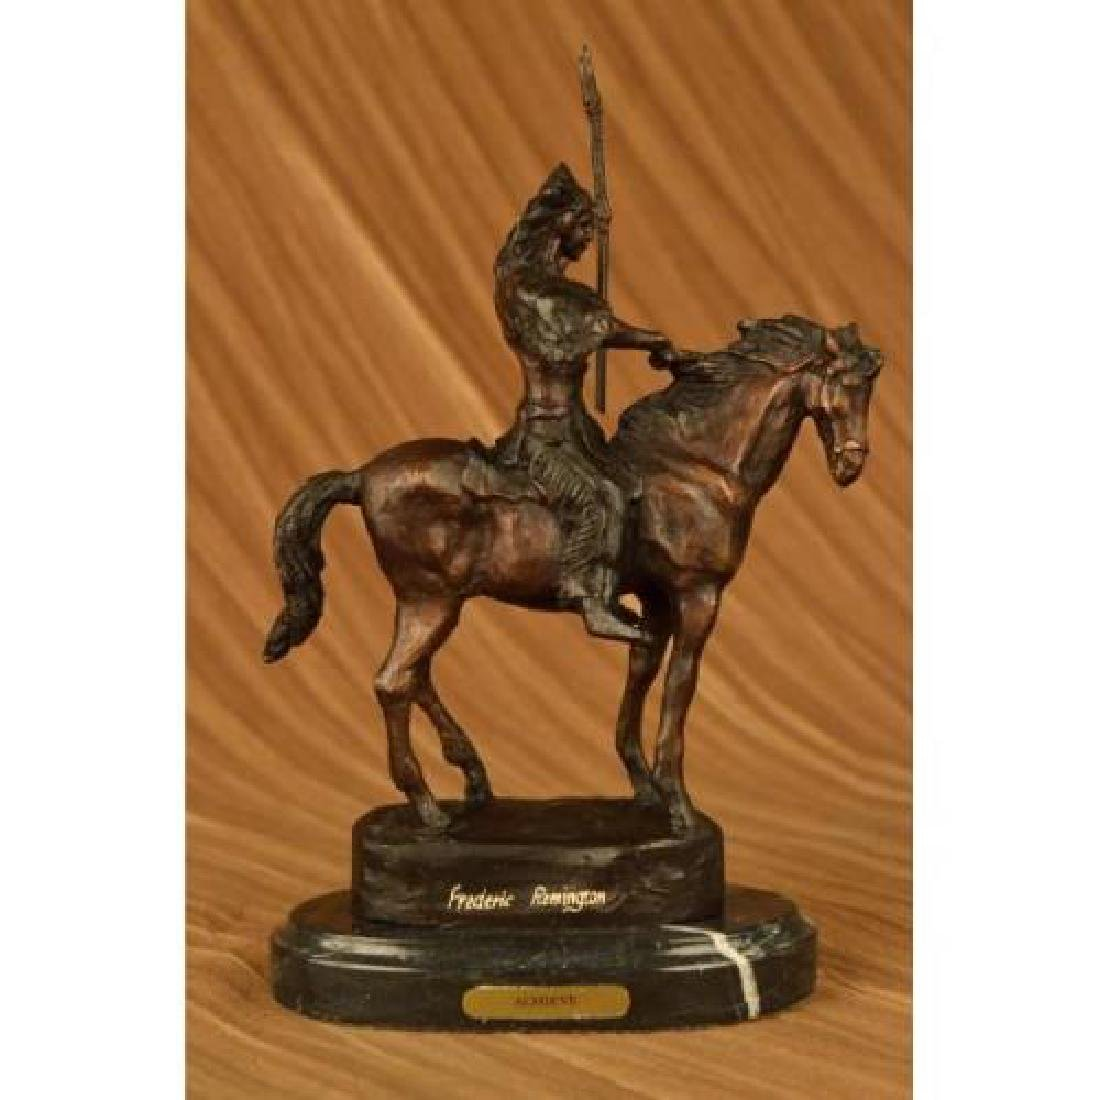 Native American on Horse with Spear Bronze Sculpture